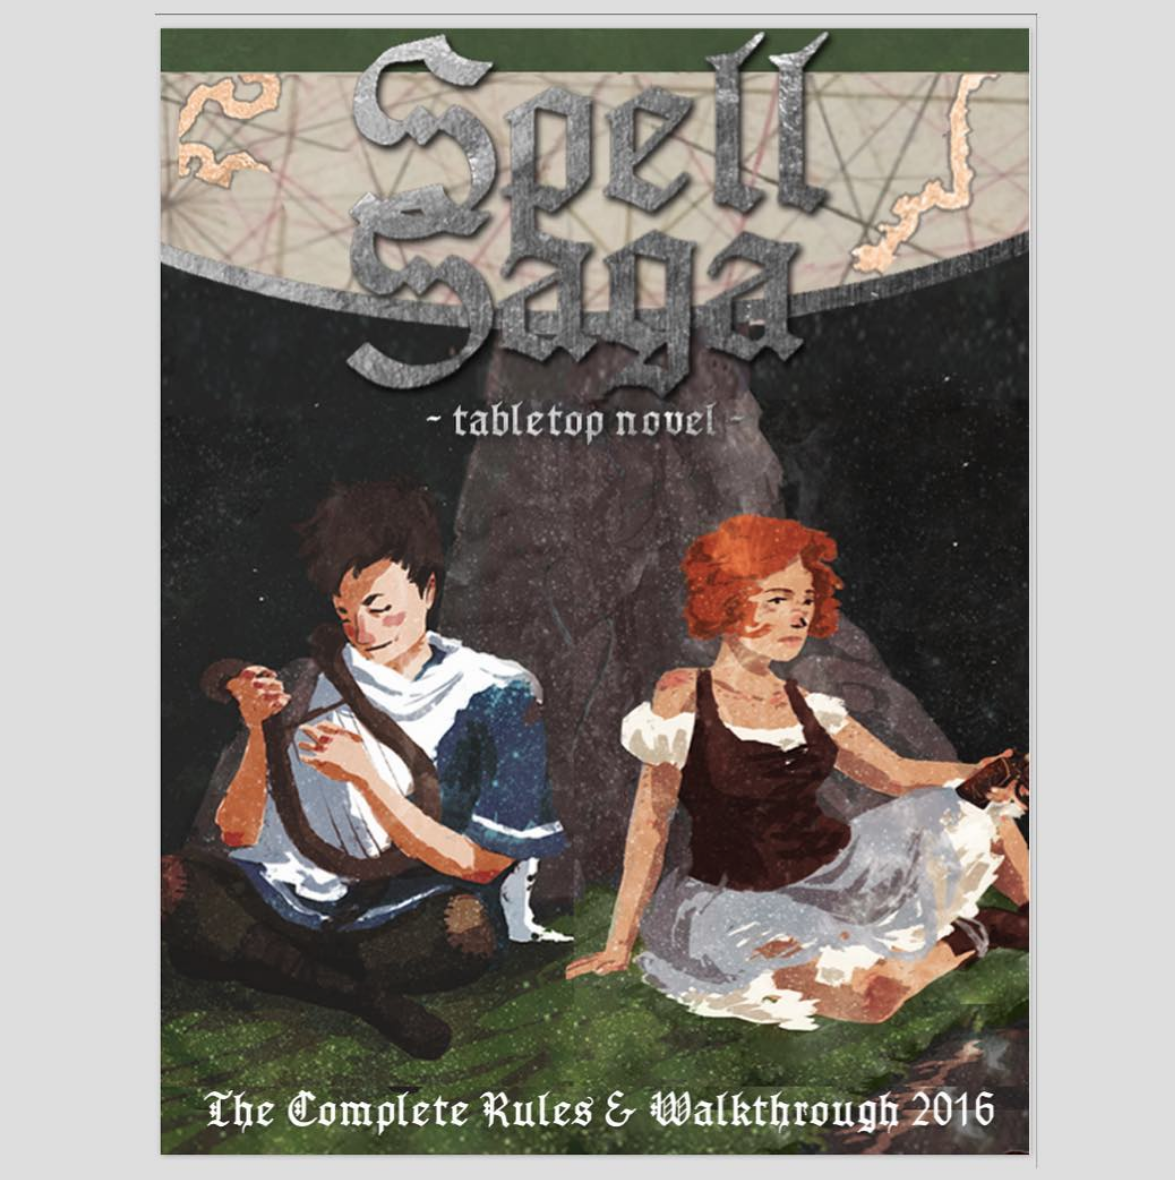 2016 mockup cover for the 2016 Rulebook